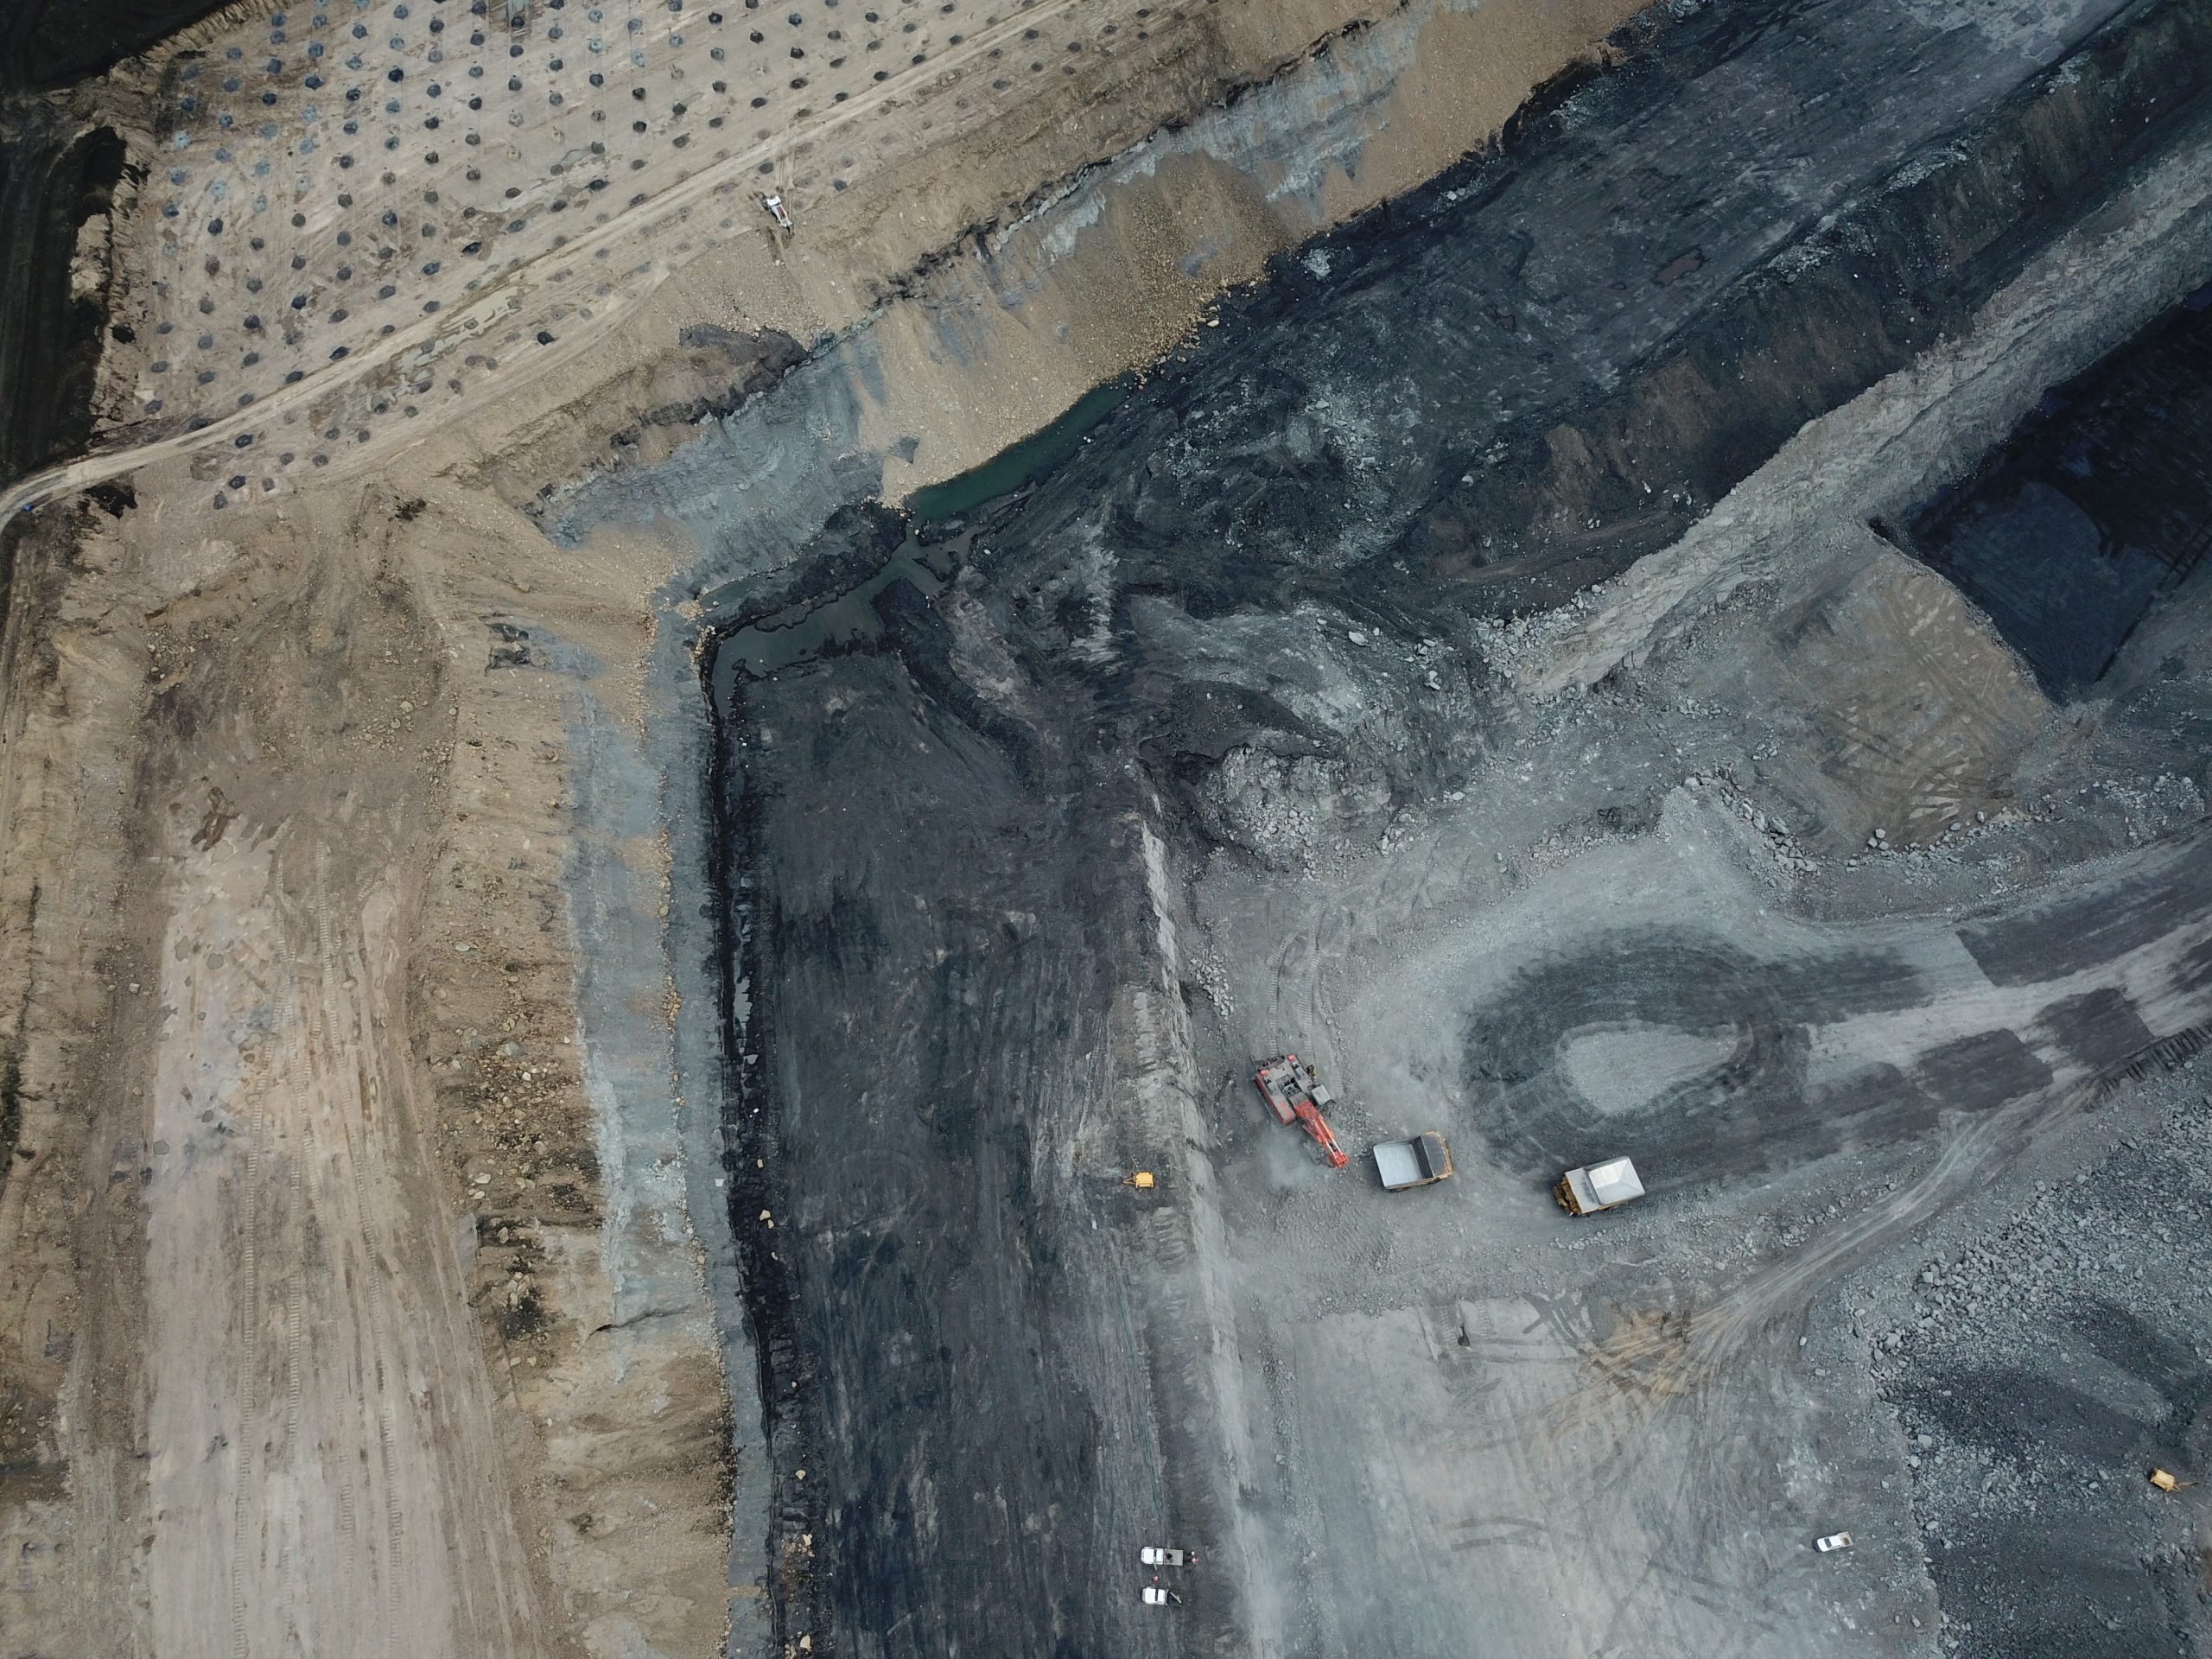 Mine site aerial view